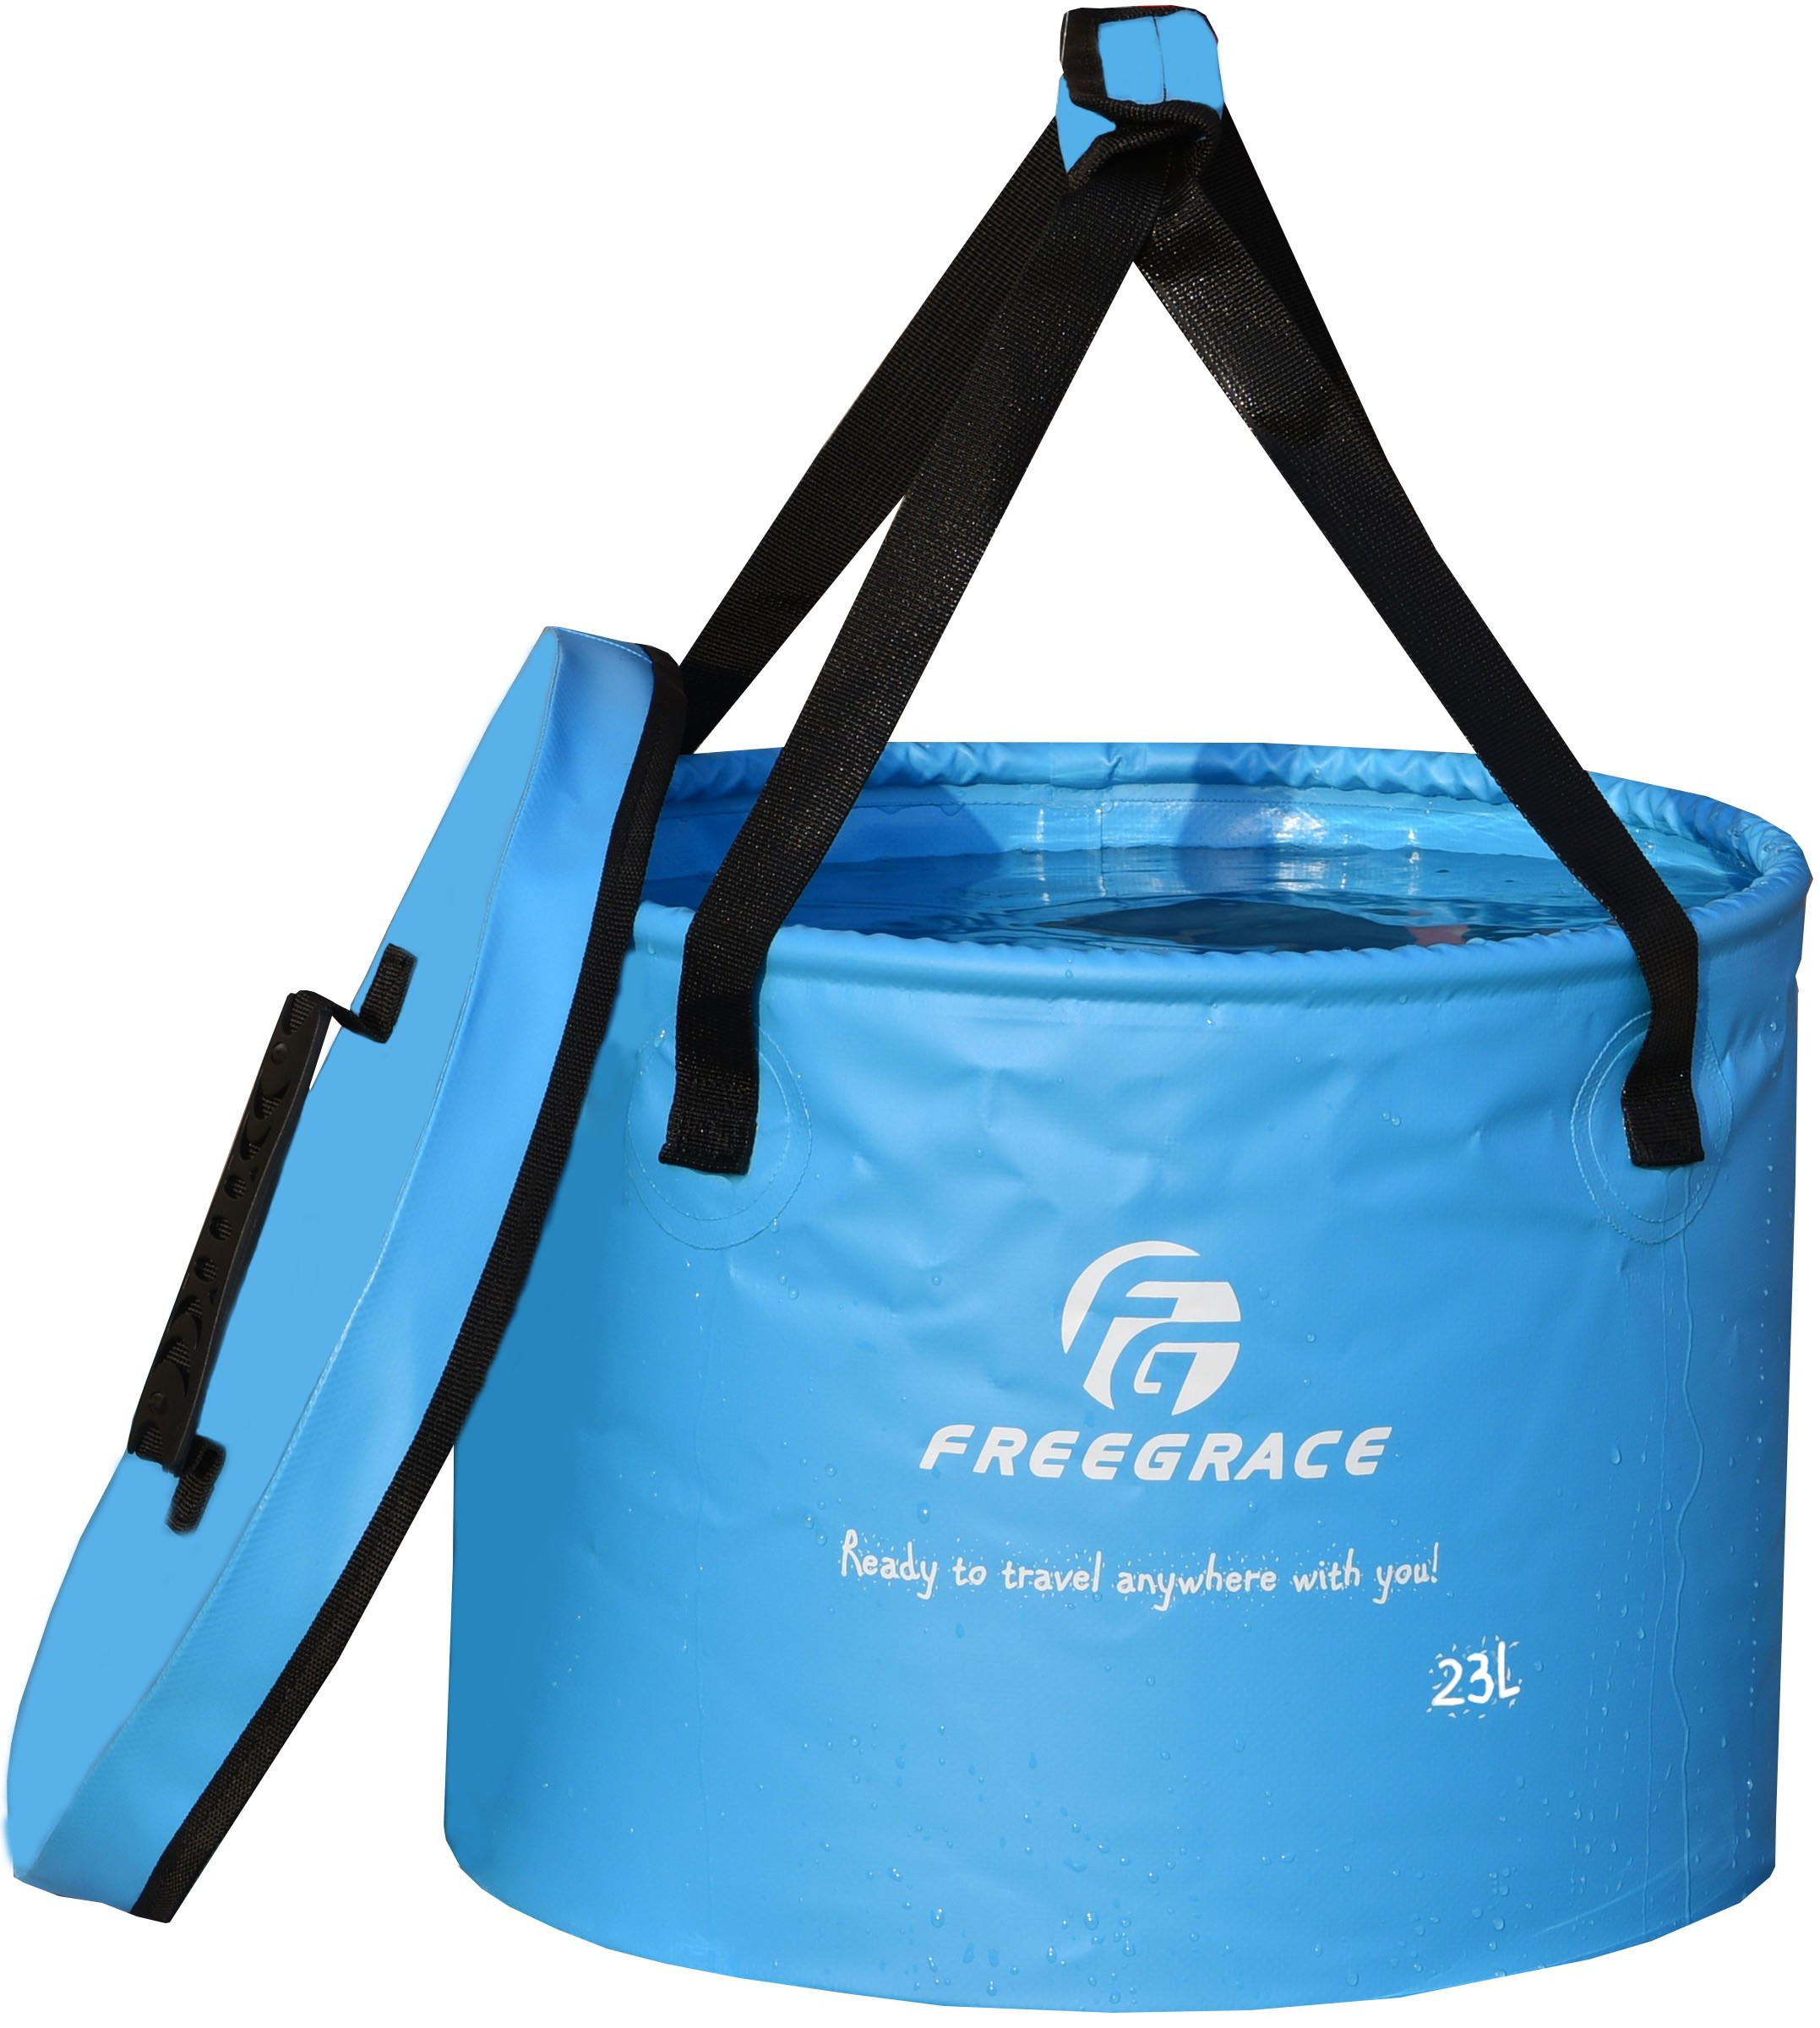 Freegrace Premium Collapsible Bucket -Multifunctional Folding Bucket -Perfect Gear for Camping, Hiking & Travel (Blue, 23L Upgraded) by Freegrace